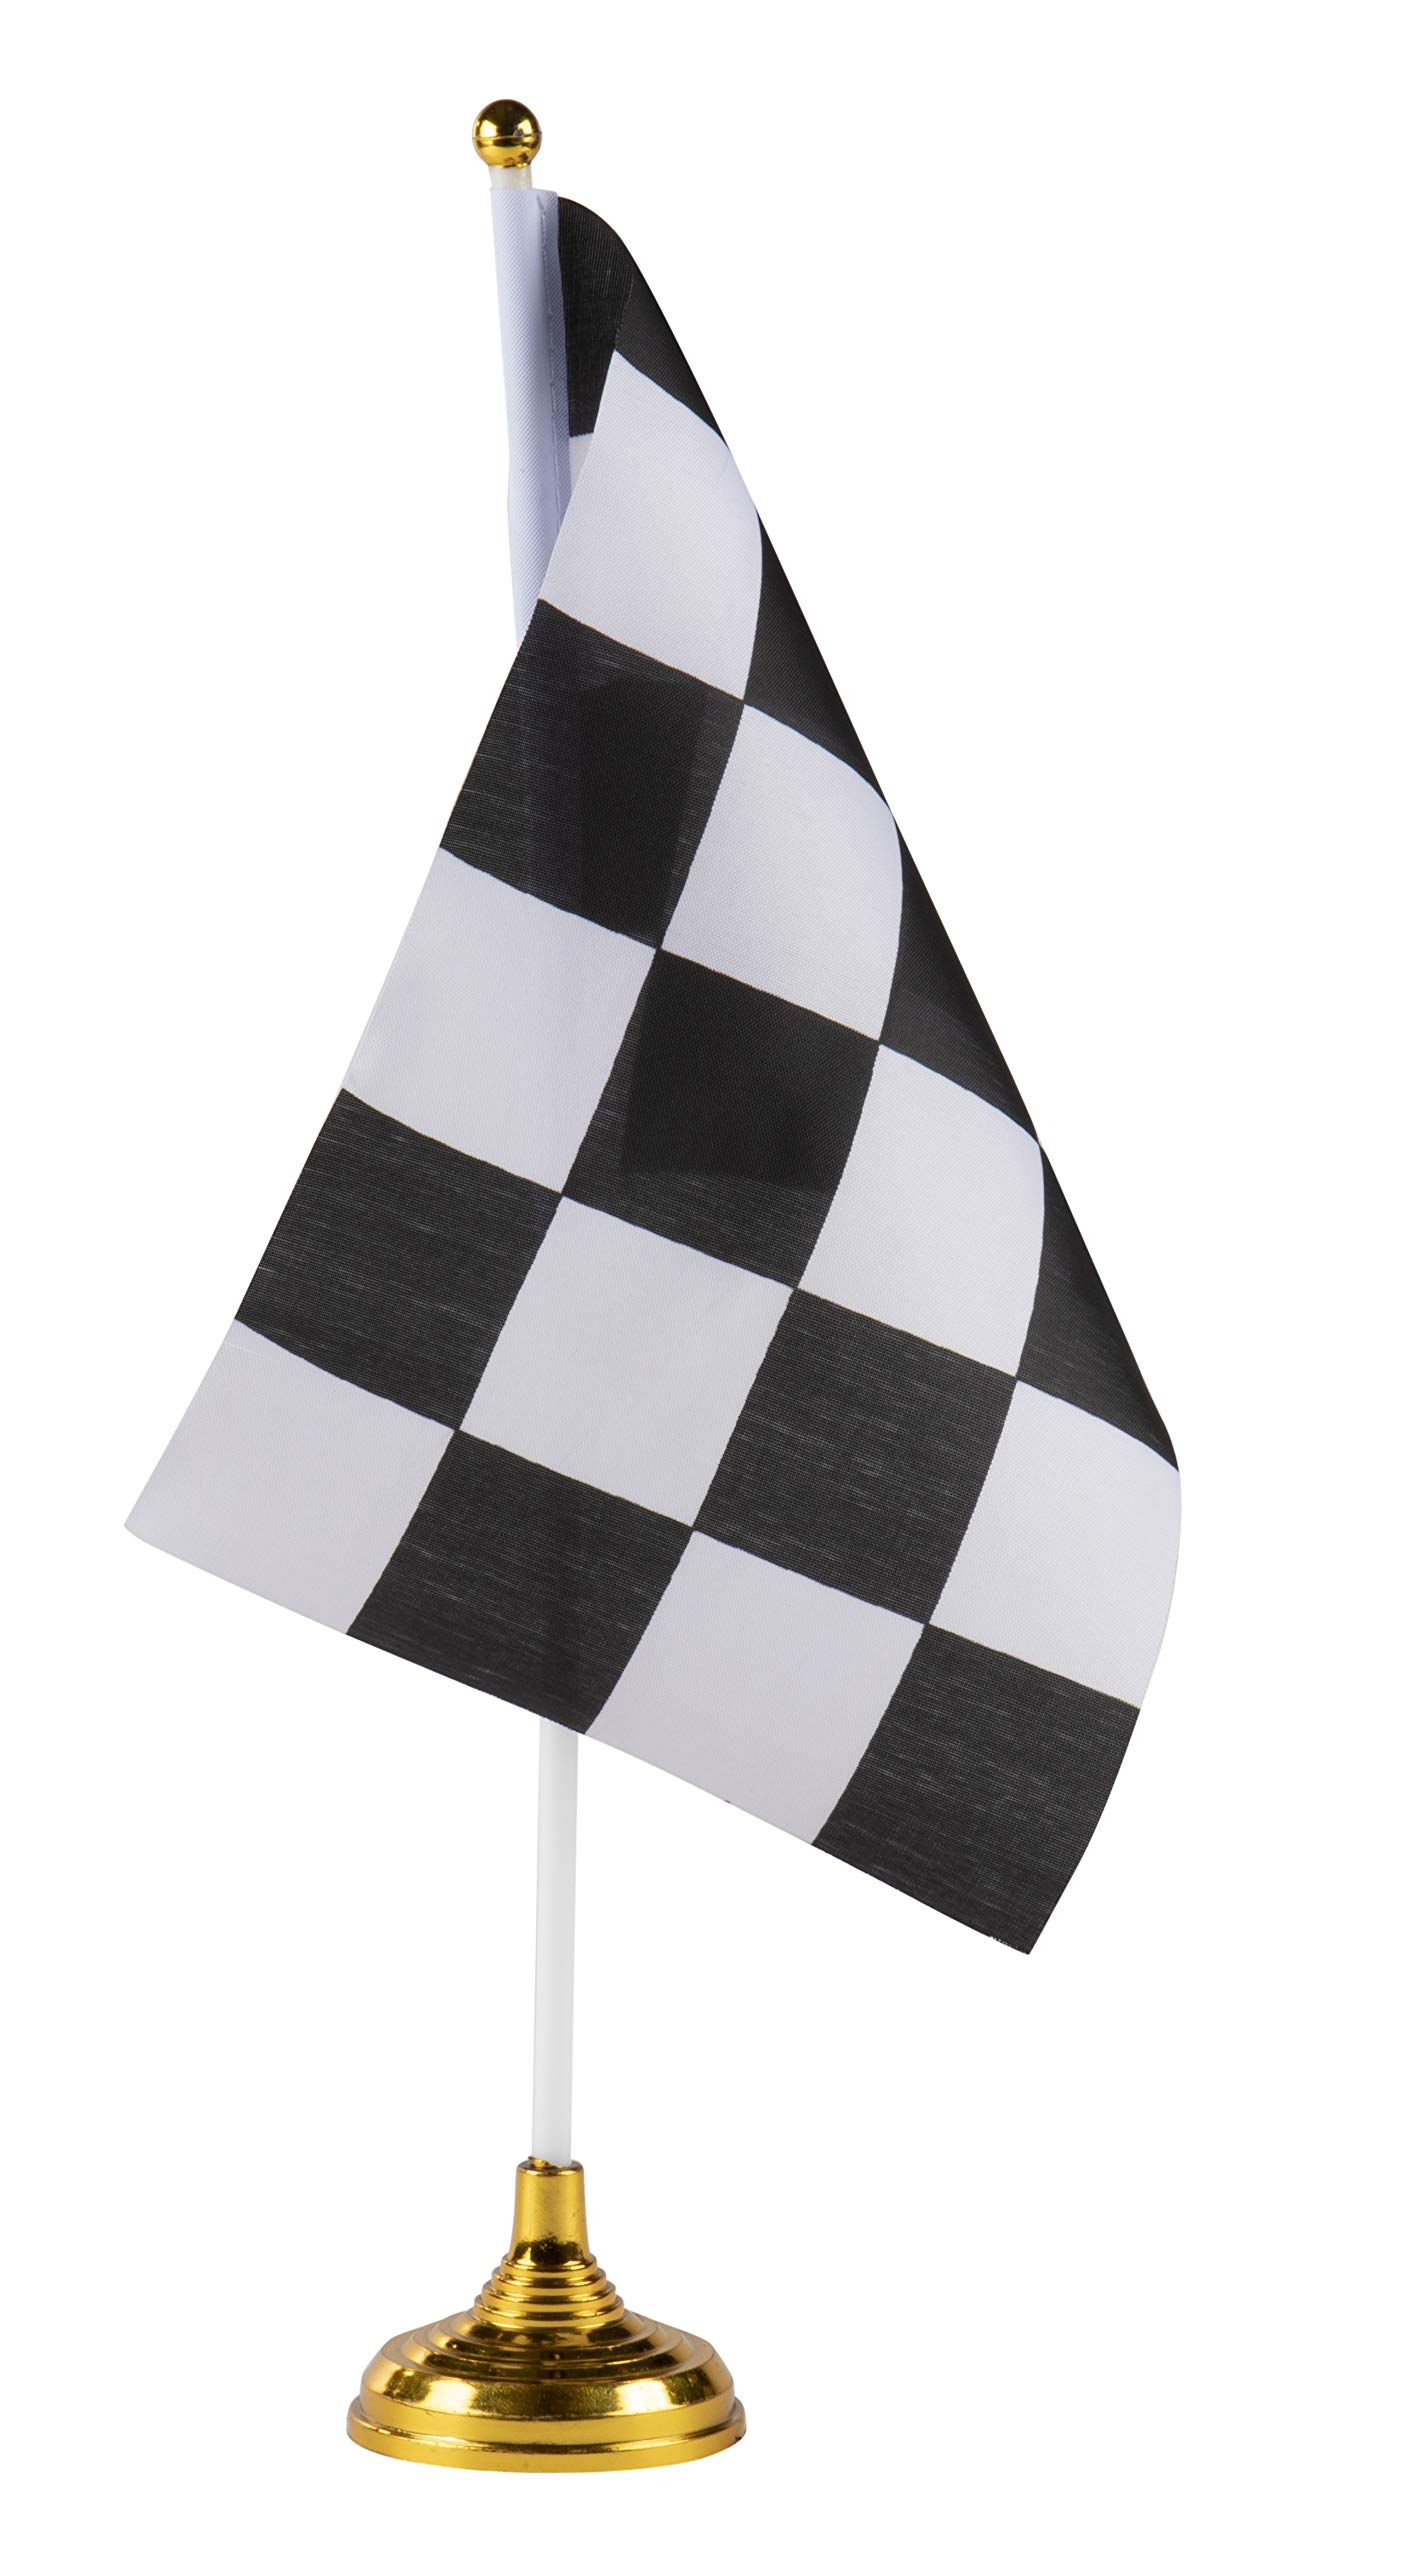 Checkered Desk Flags - 24-Piece Racing Flags with Stick and Gold Stand, Race Car Birthday Party Favors, Black and White, 8.5 x 5.5 Inches